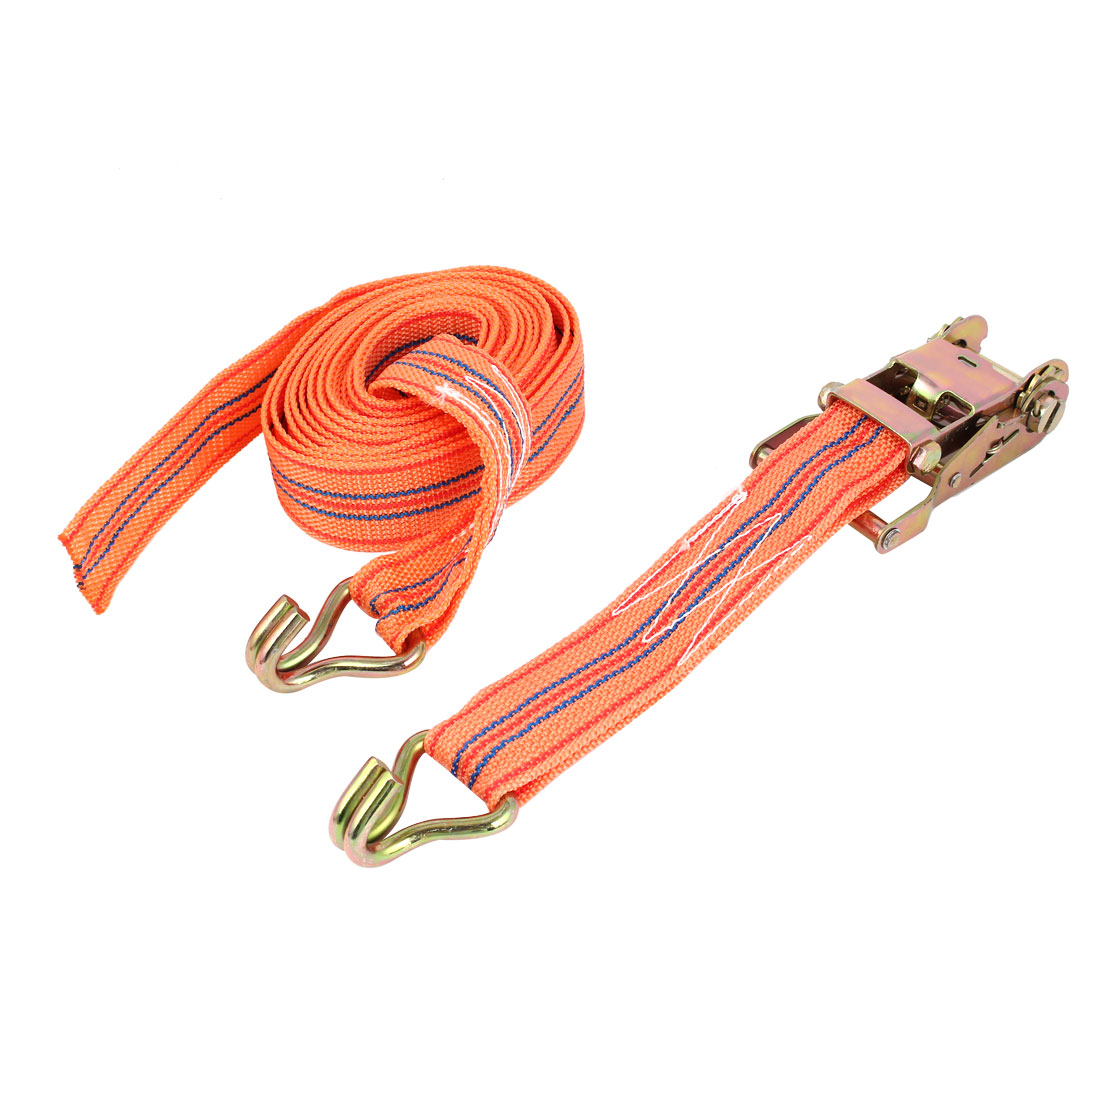 Truck Motorcycle Luggage Binding Double Hooks Ratchet Tie Down Strap 6M Long